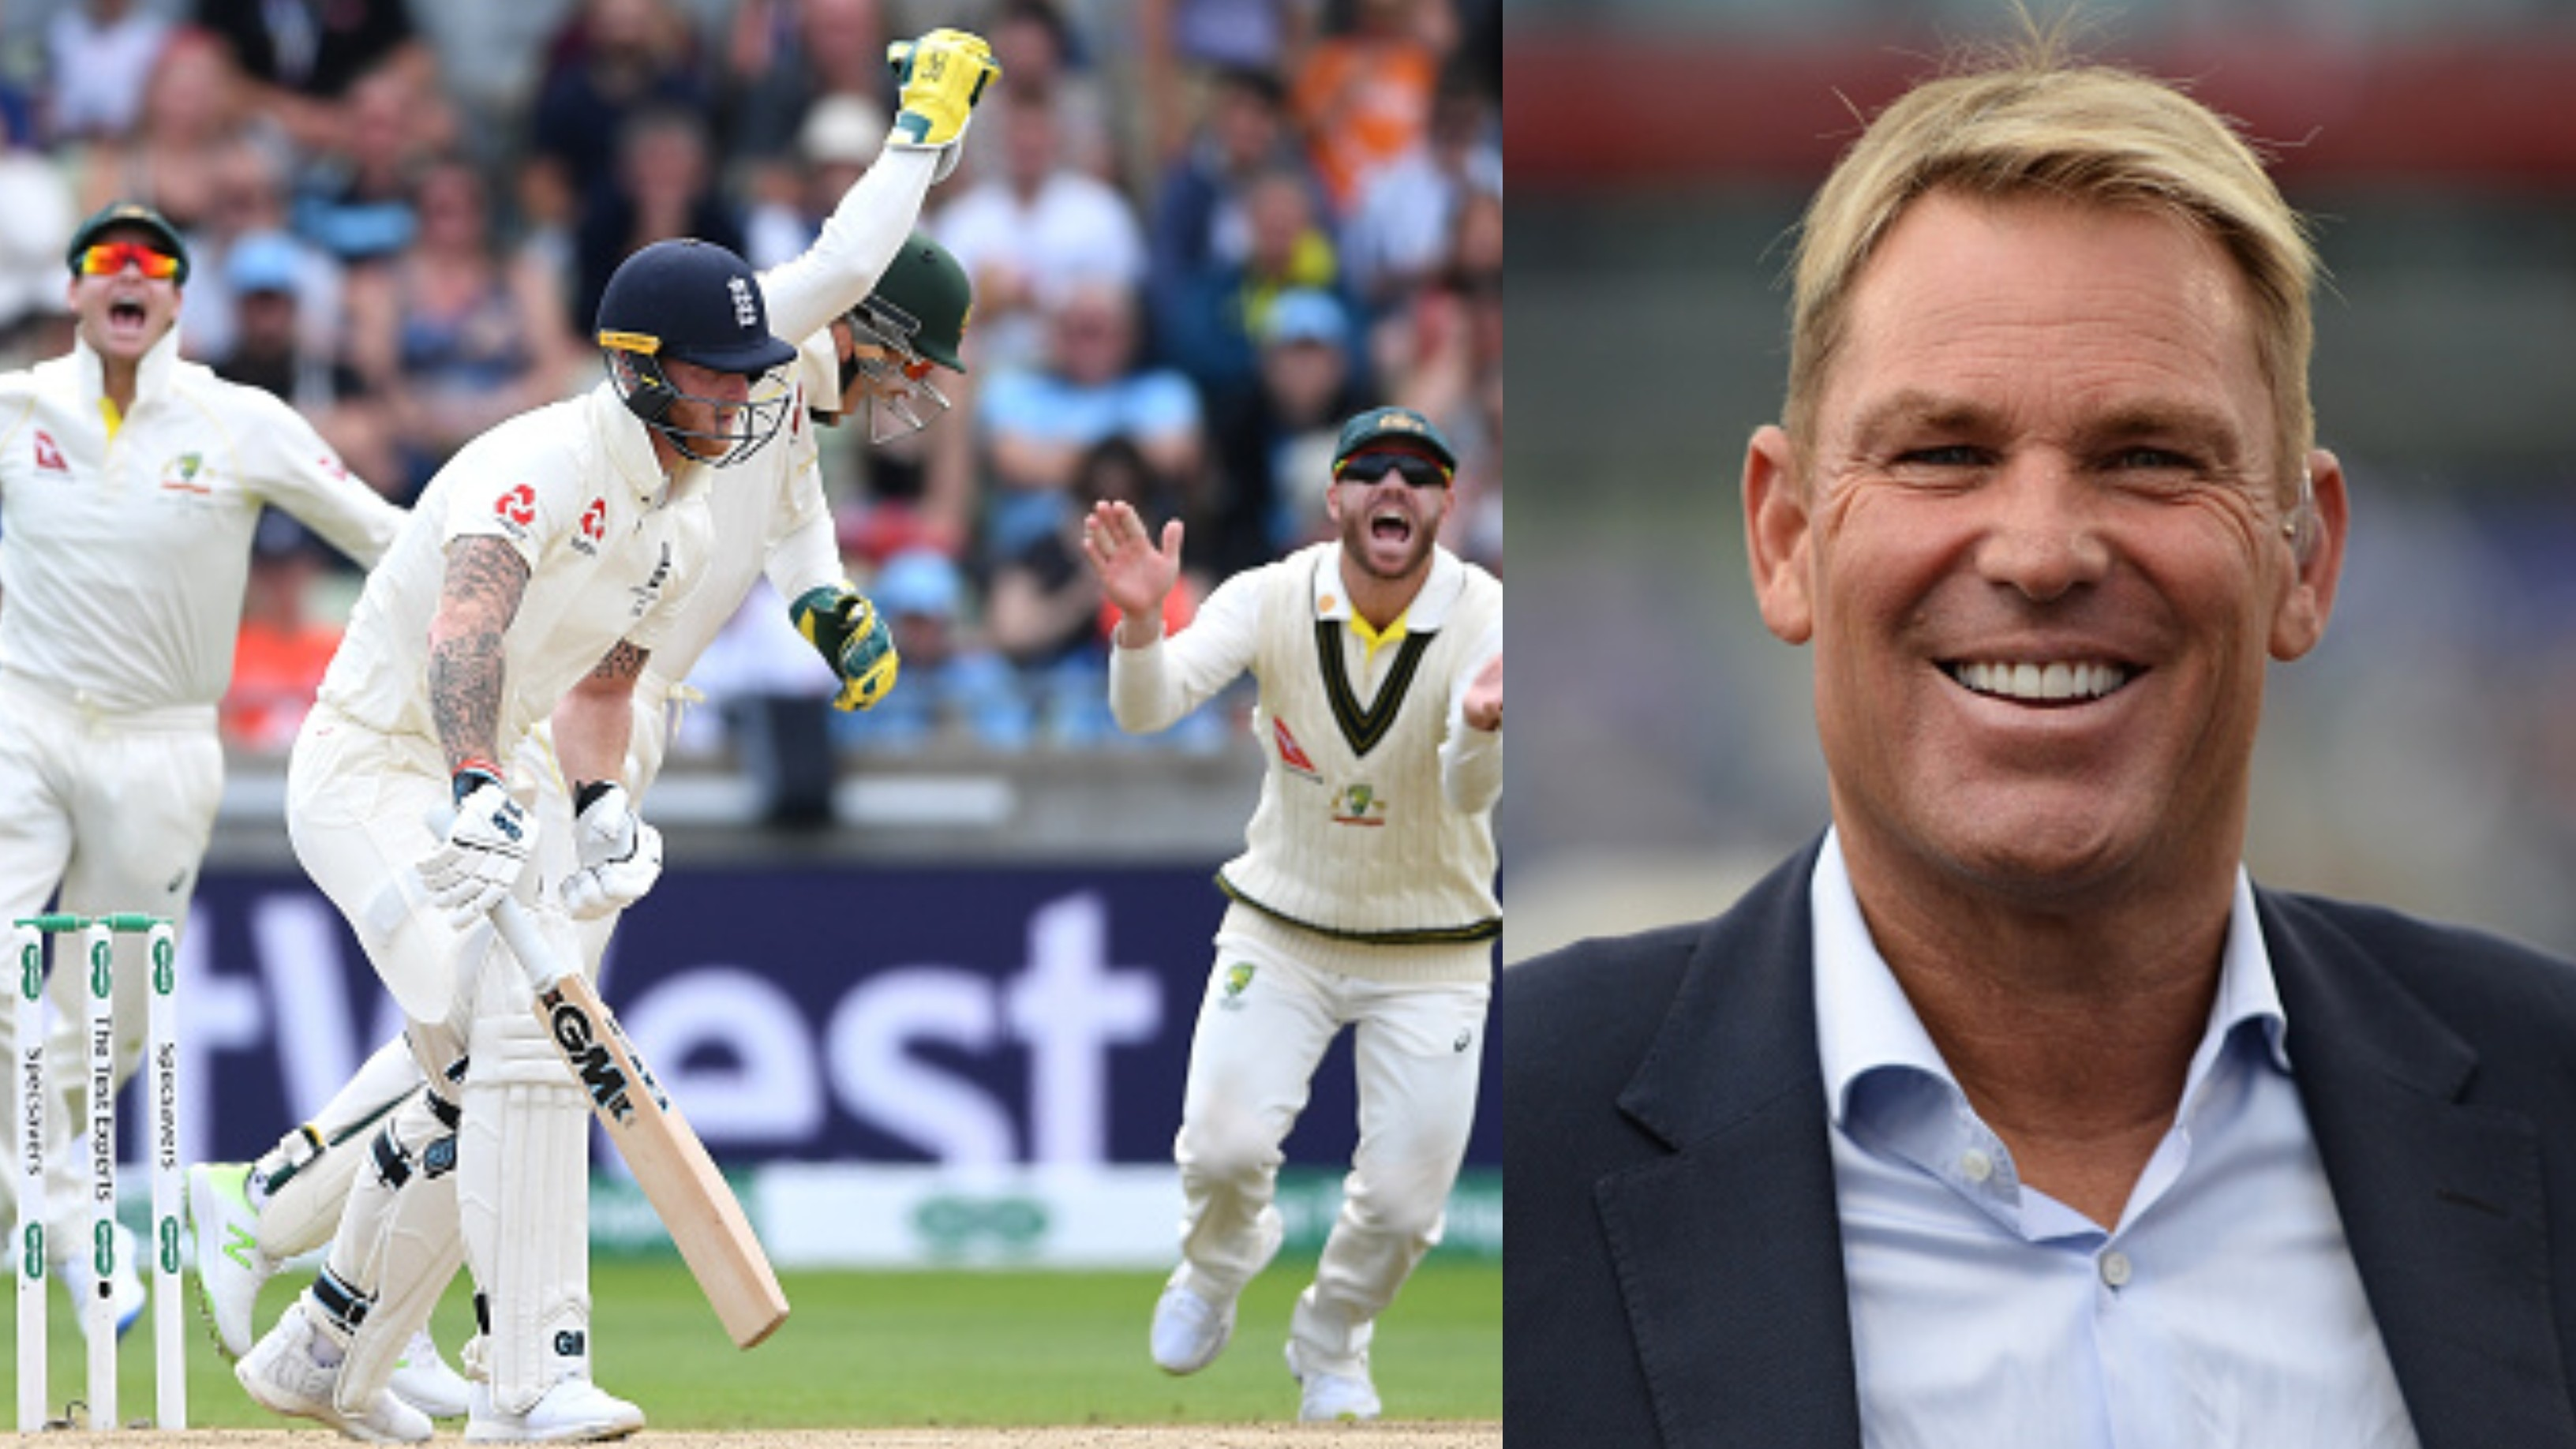 Ashes 2019: Shane Warne says England will feel pressure for the first time in Ashes